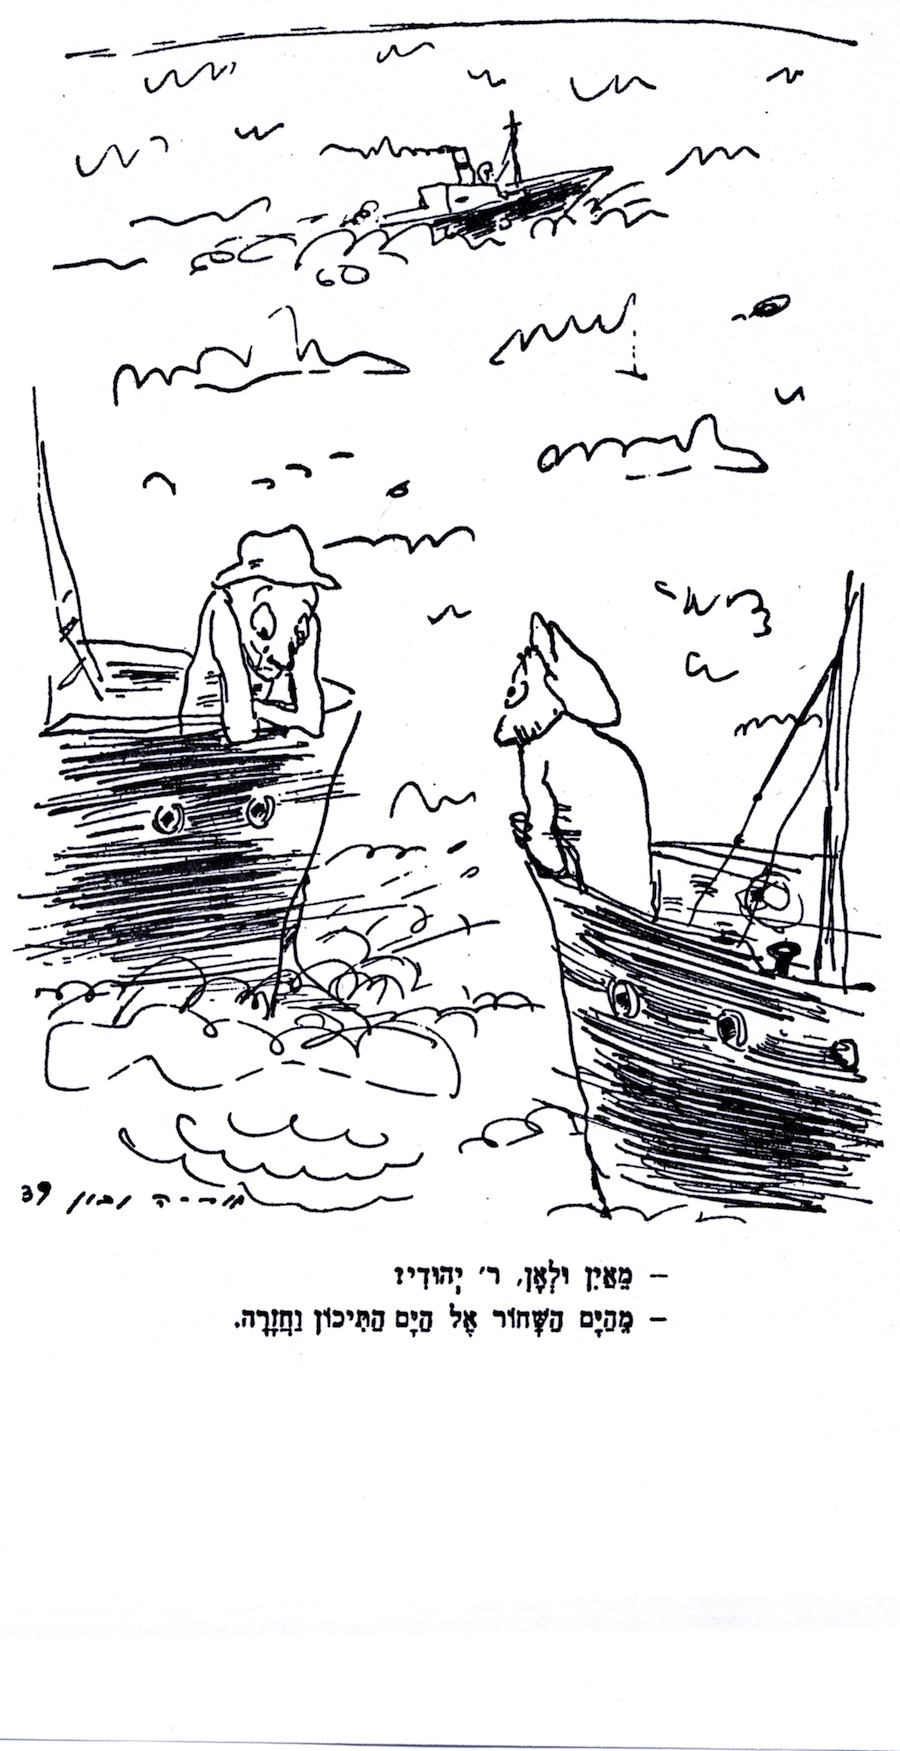 "Arie Navon was the cartoonist for Davar, the Hebrew-language daily newspaper of the Labor Zionist movement, in British Mandatory Palestine. Although not specifically about the St. Louis, this cartoon, published on April 30, 1939, captured the mood of despair among Jewish refugees seeking haven. The passenger on one ship asks, ""Where are you coming from, and where are you going?"" The second man replies: ""From the Black Sea to the Mediterranean, and back."""